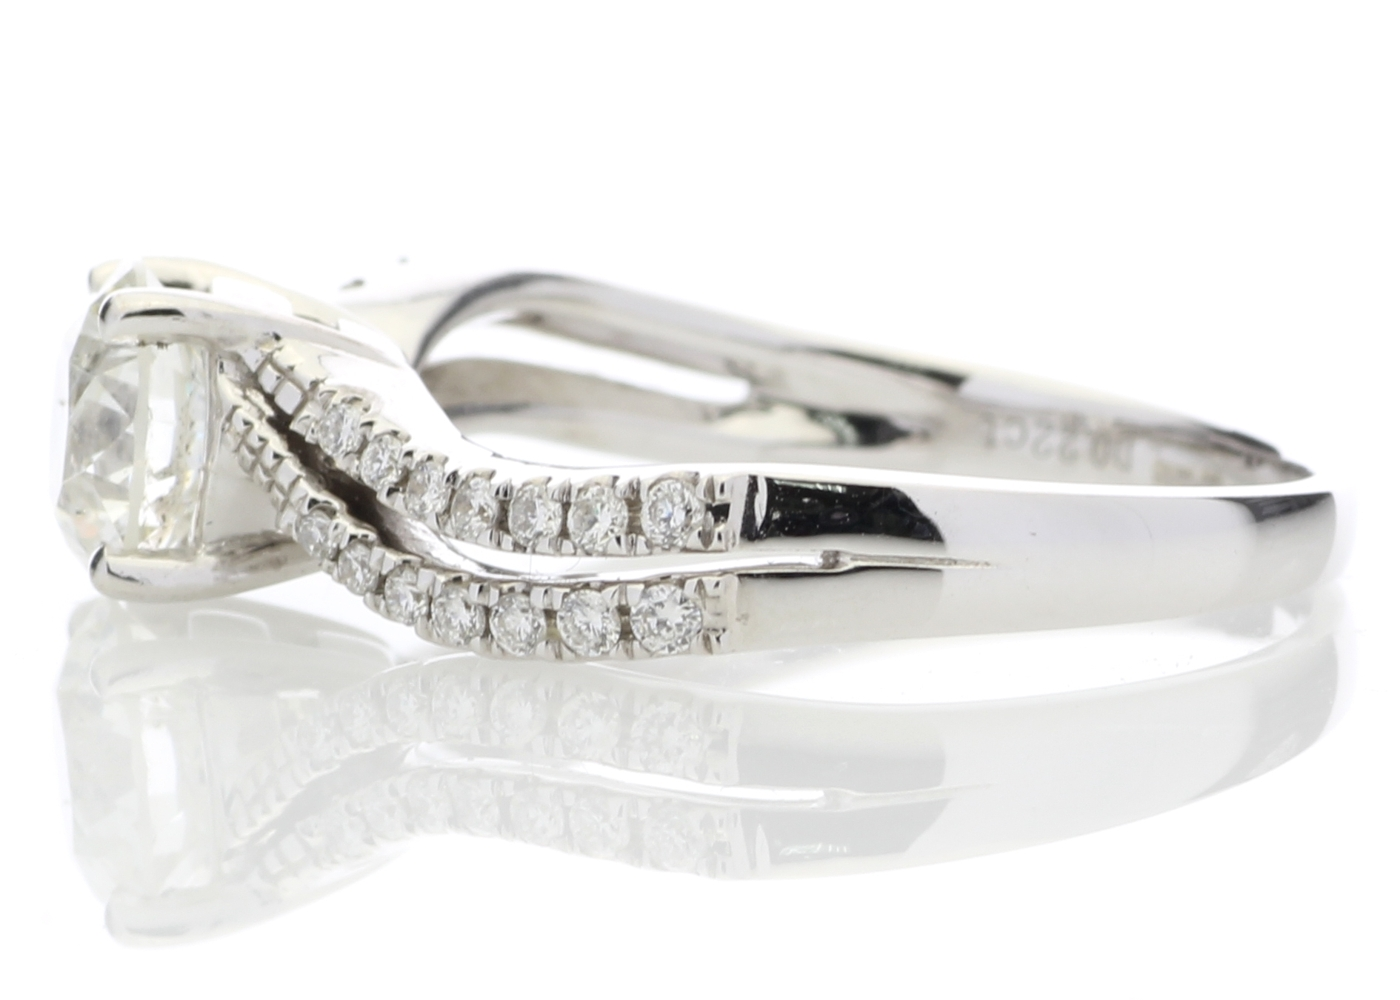 18ct White Gold Solitaire Diamond Ring With Two Rows Shoulder Set 1.31 Carats - Image 3 of 5